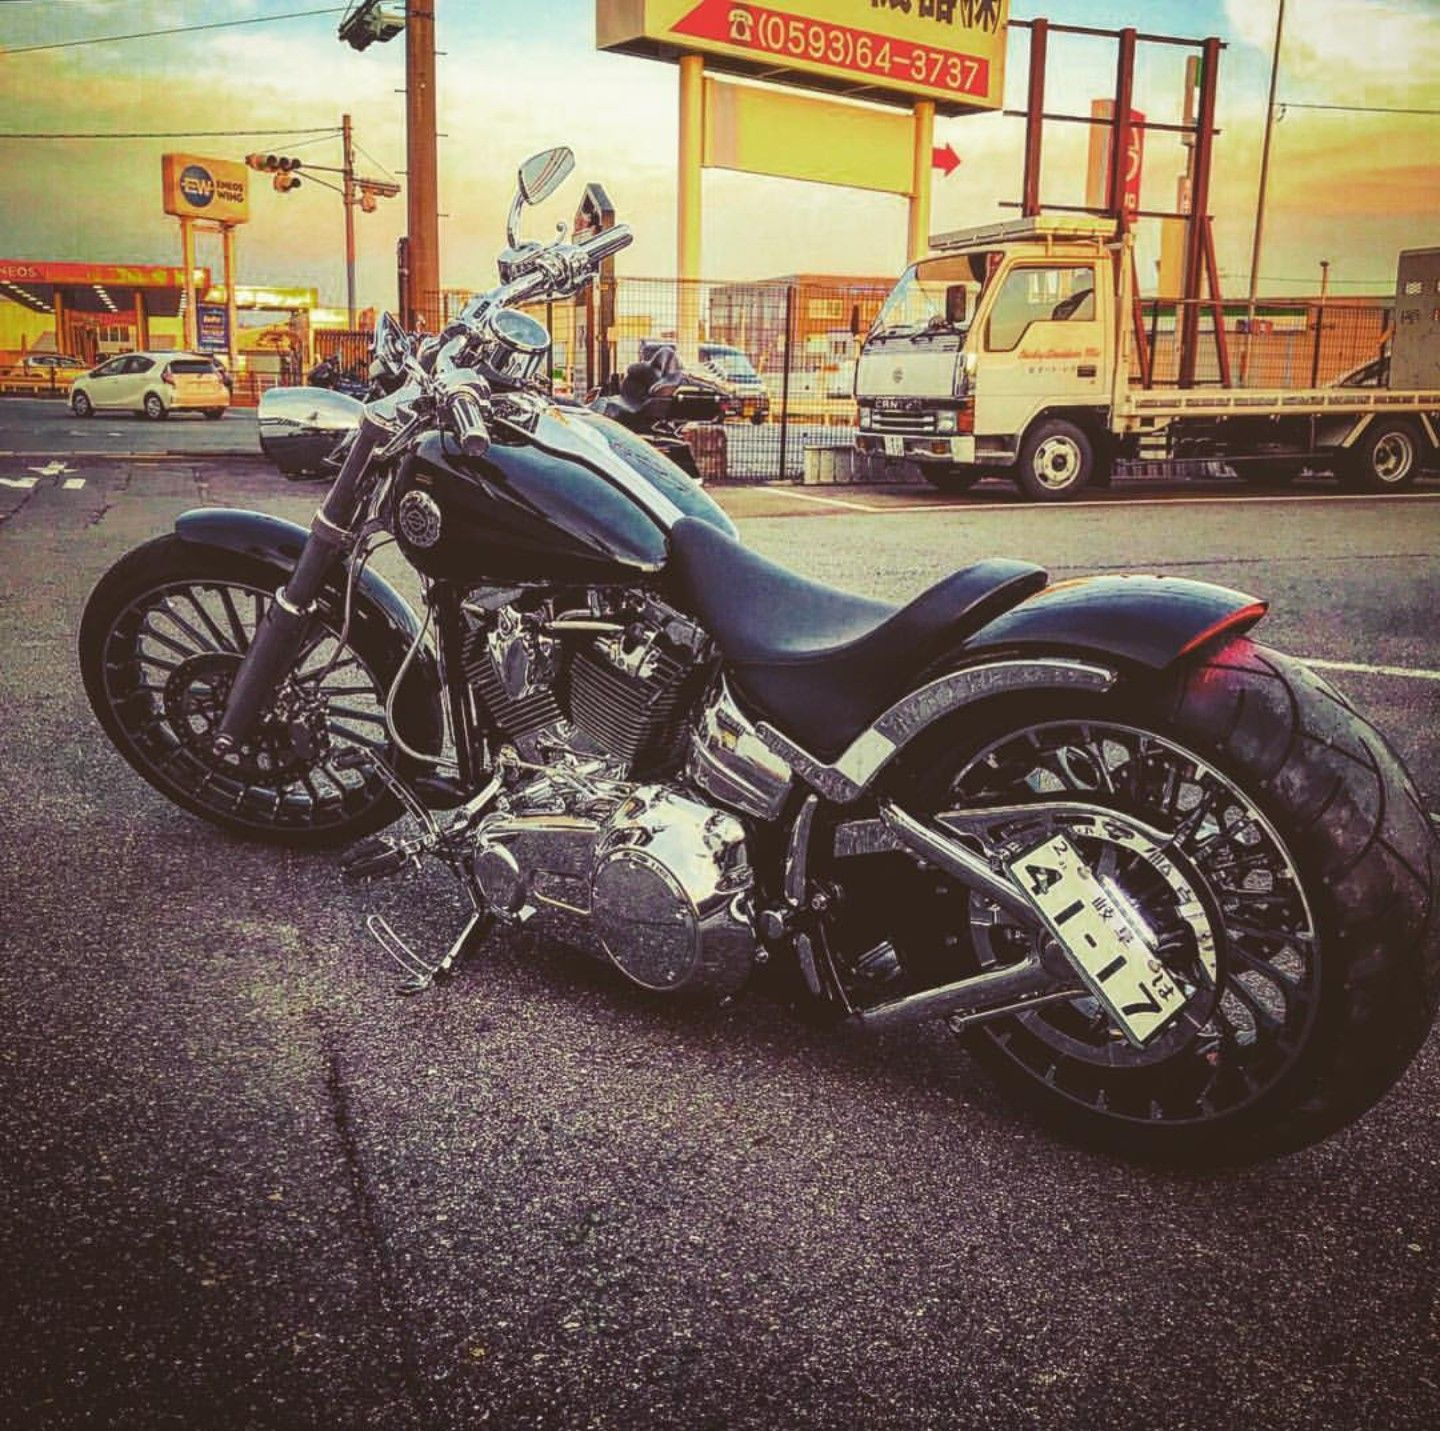 Idea by Eric Biviano on harley fxsb breakout fxbr Harley